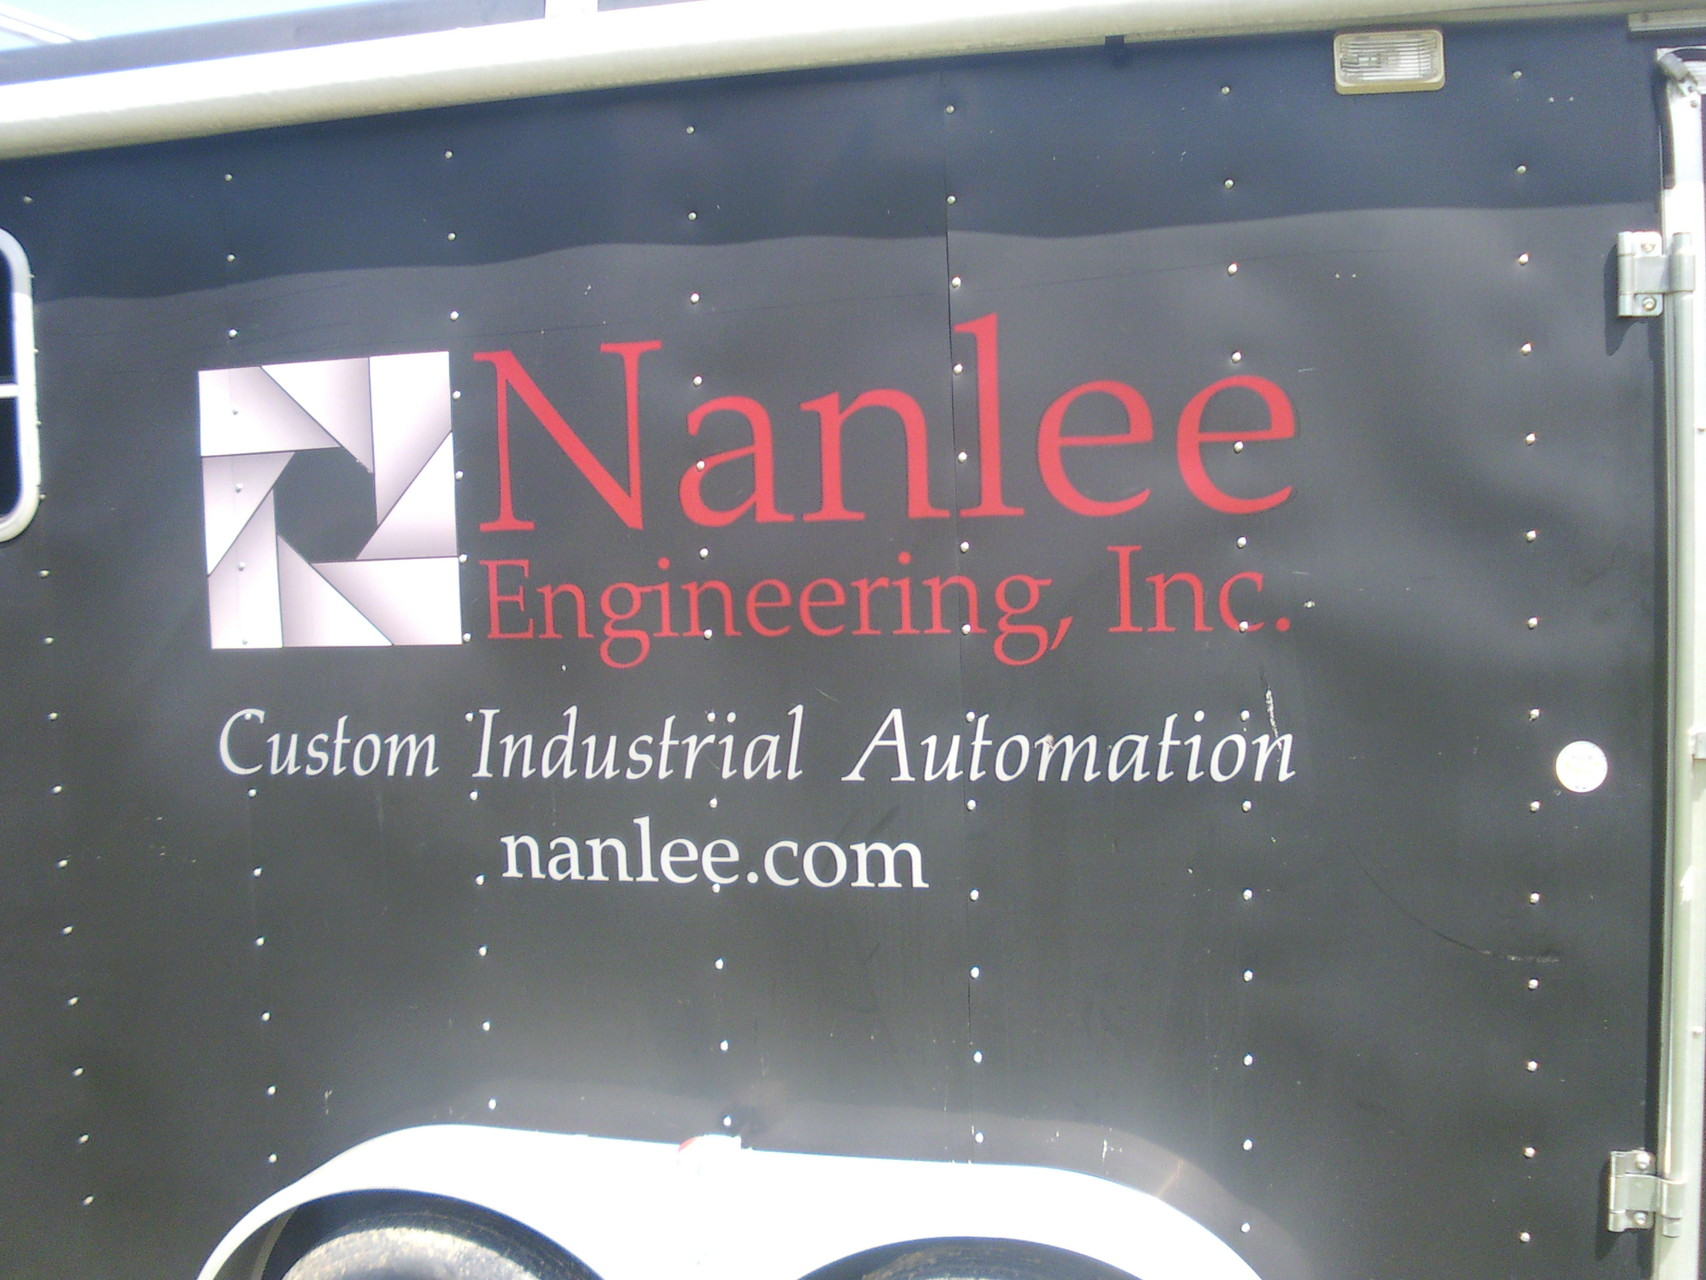 Nanlee Engineering Mobile Manufacturing trailer with name